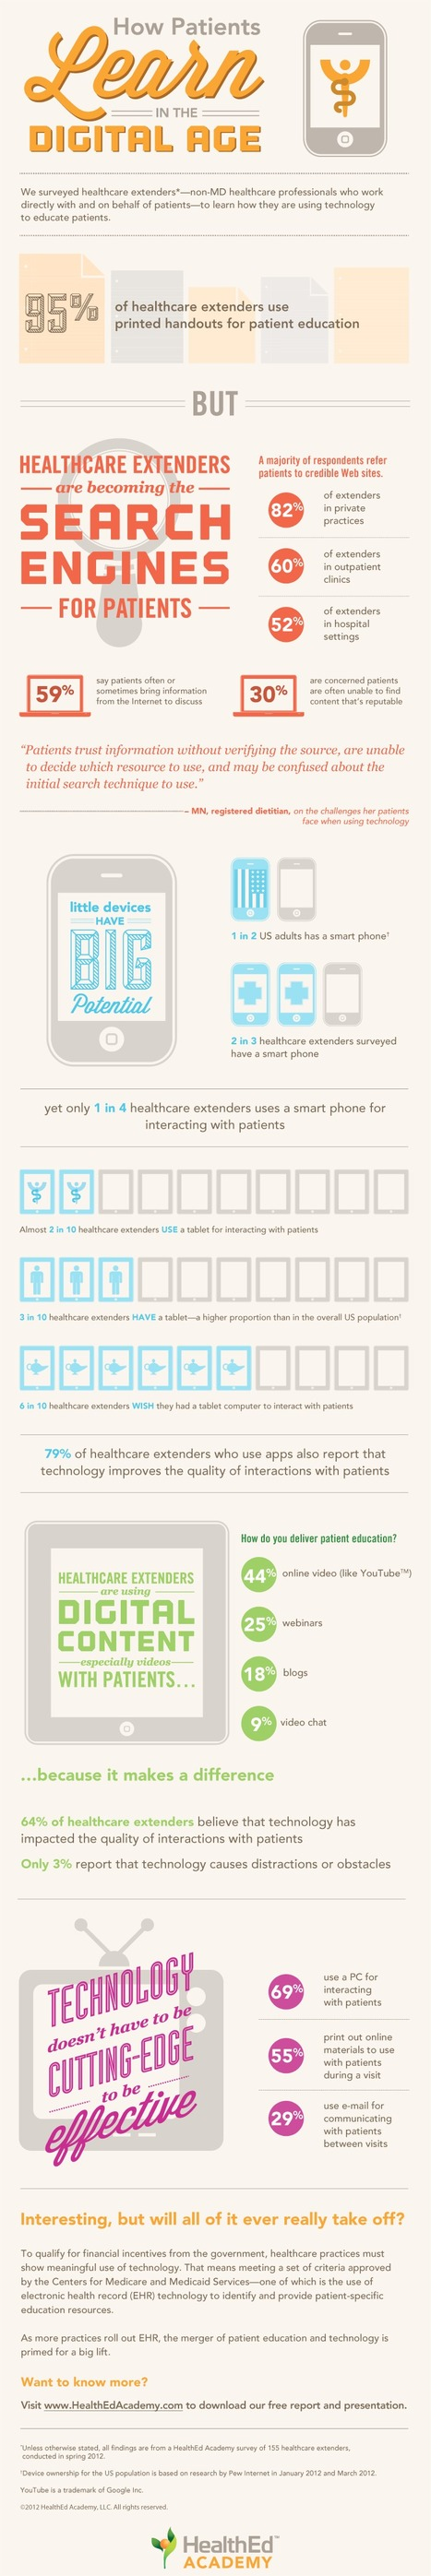 Infographic: How Patients Learn in the Digital Age | Patient Centered Healthcare | Scoop.it